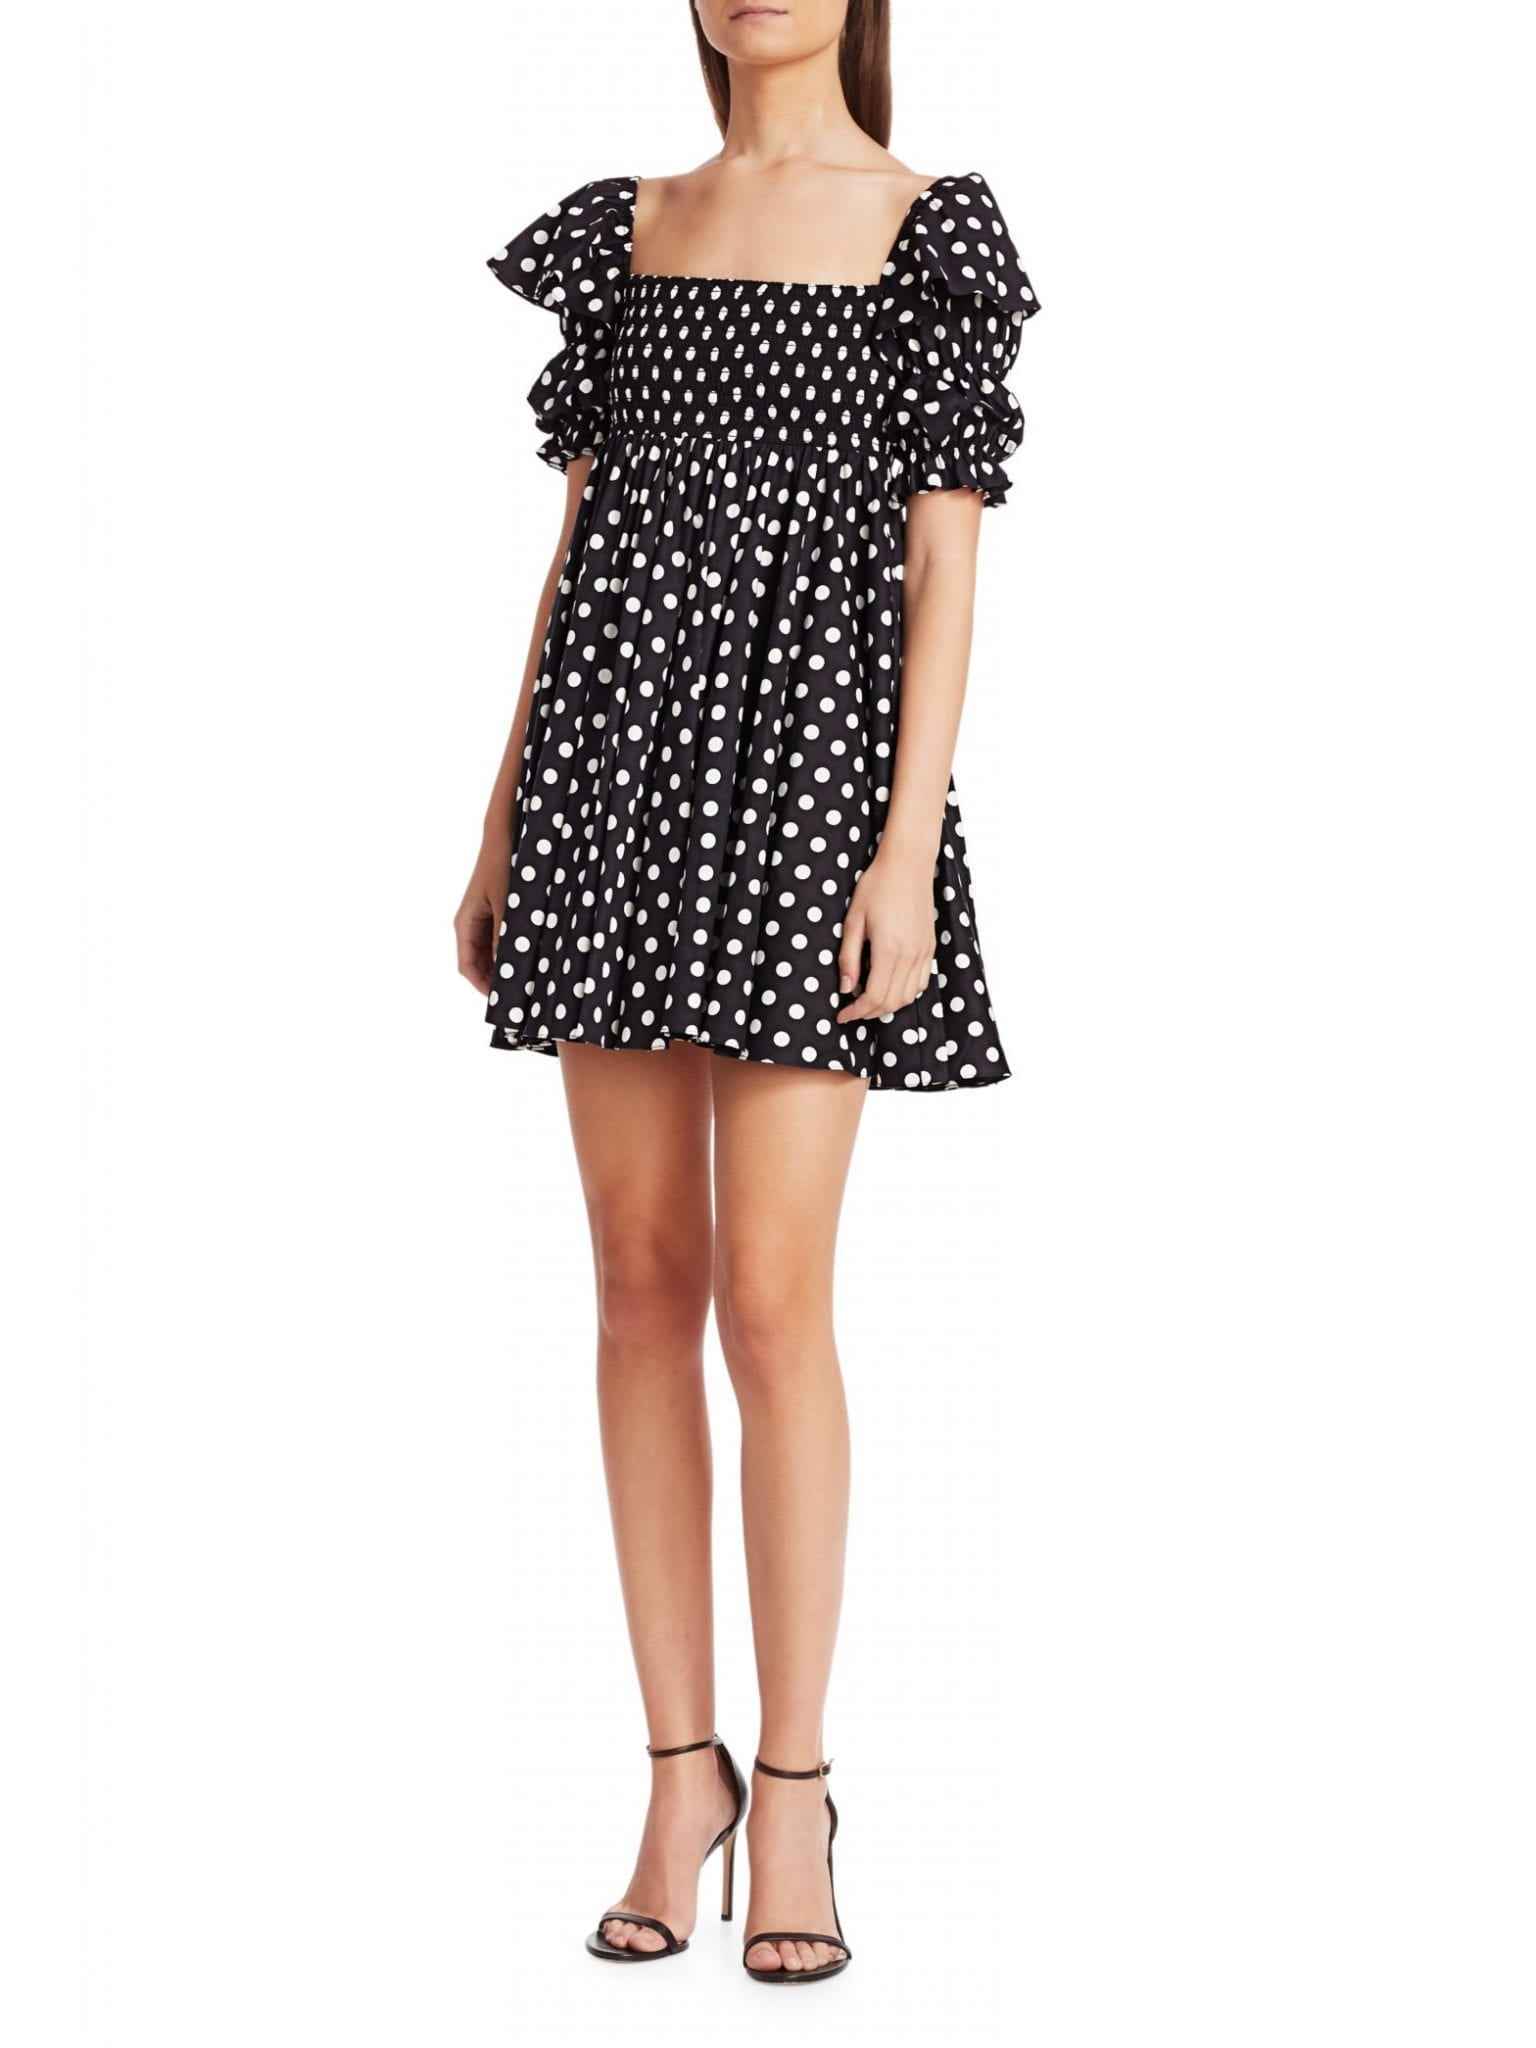 CAROLINE CONSTAS Hanna Polka Dot Mini Dress